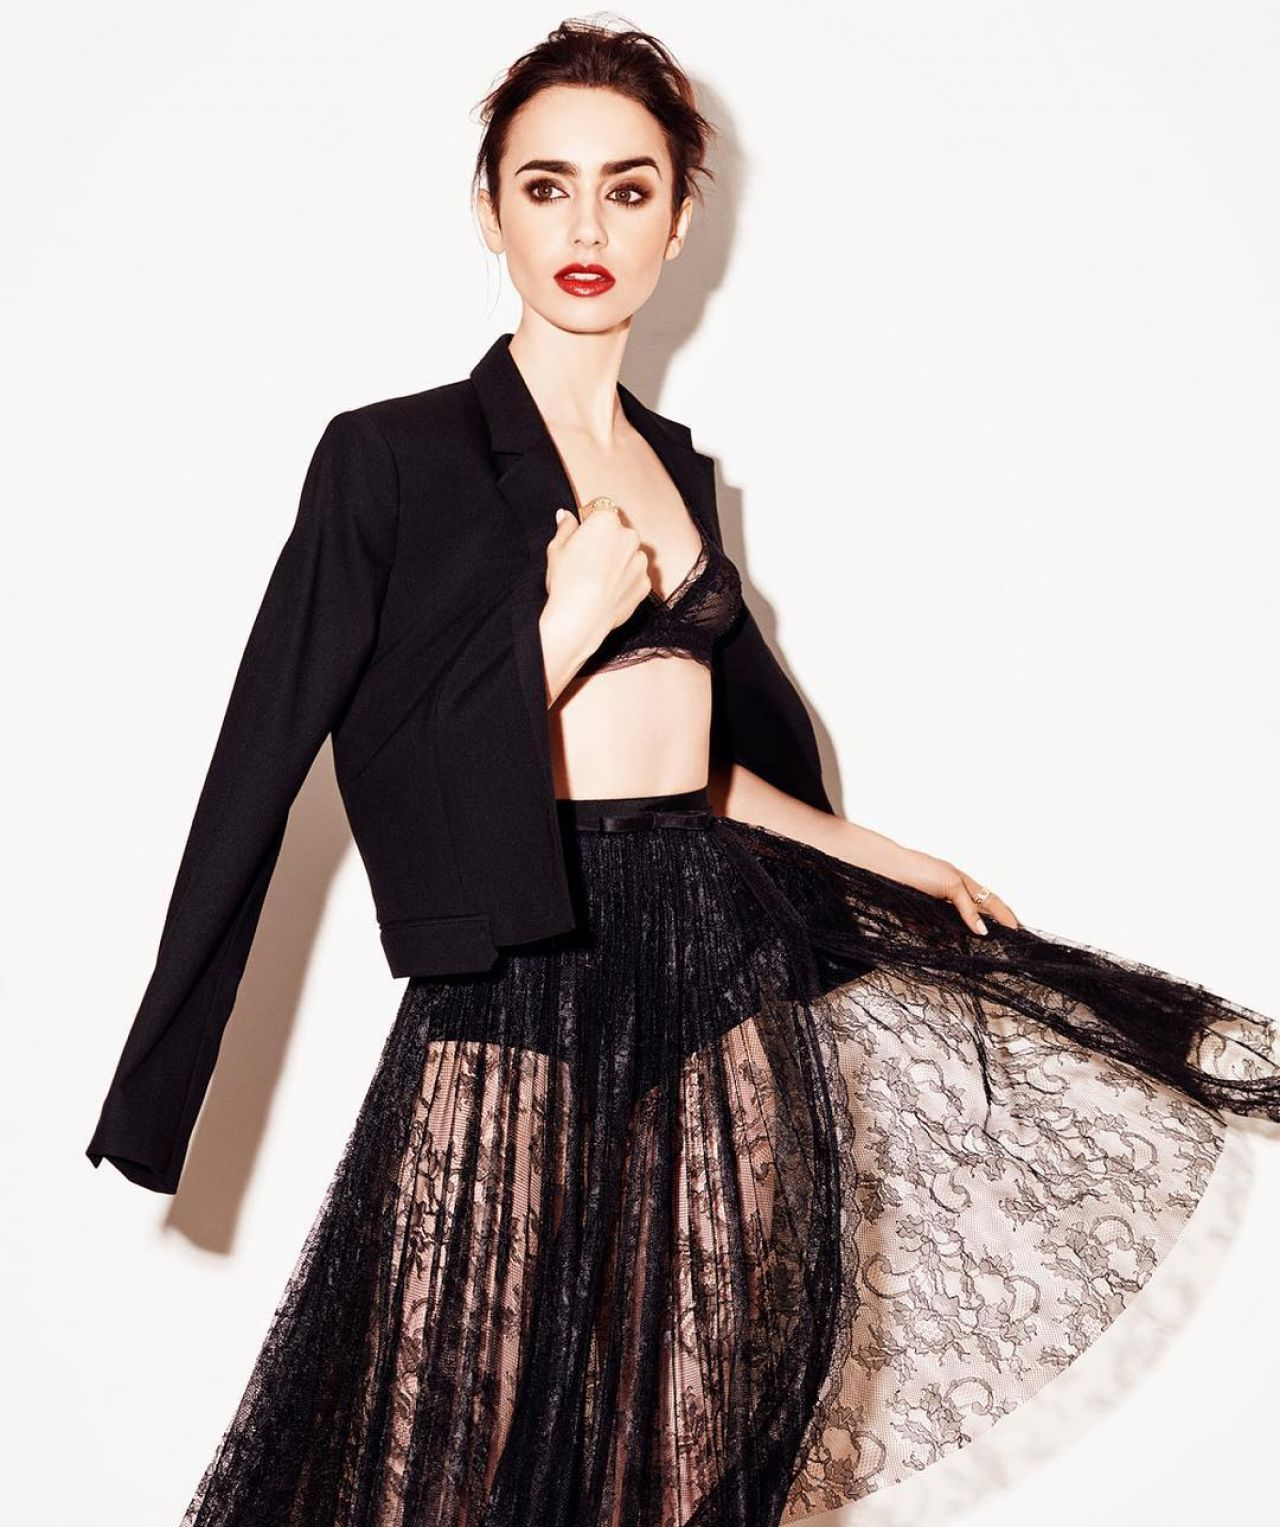 Lily Collins - Rotten Tomatoes